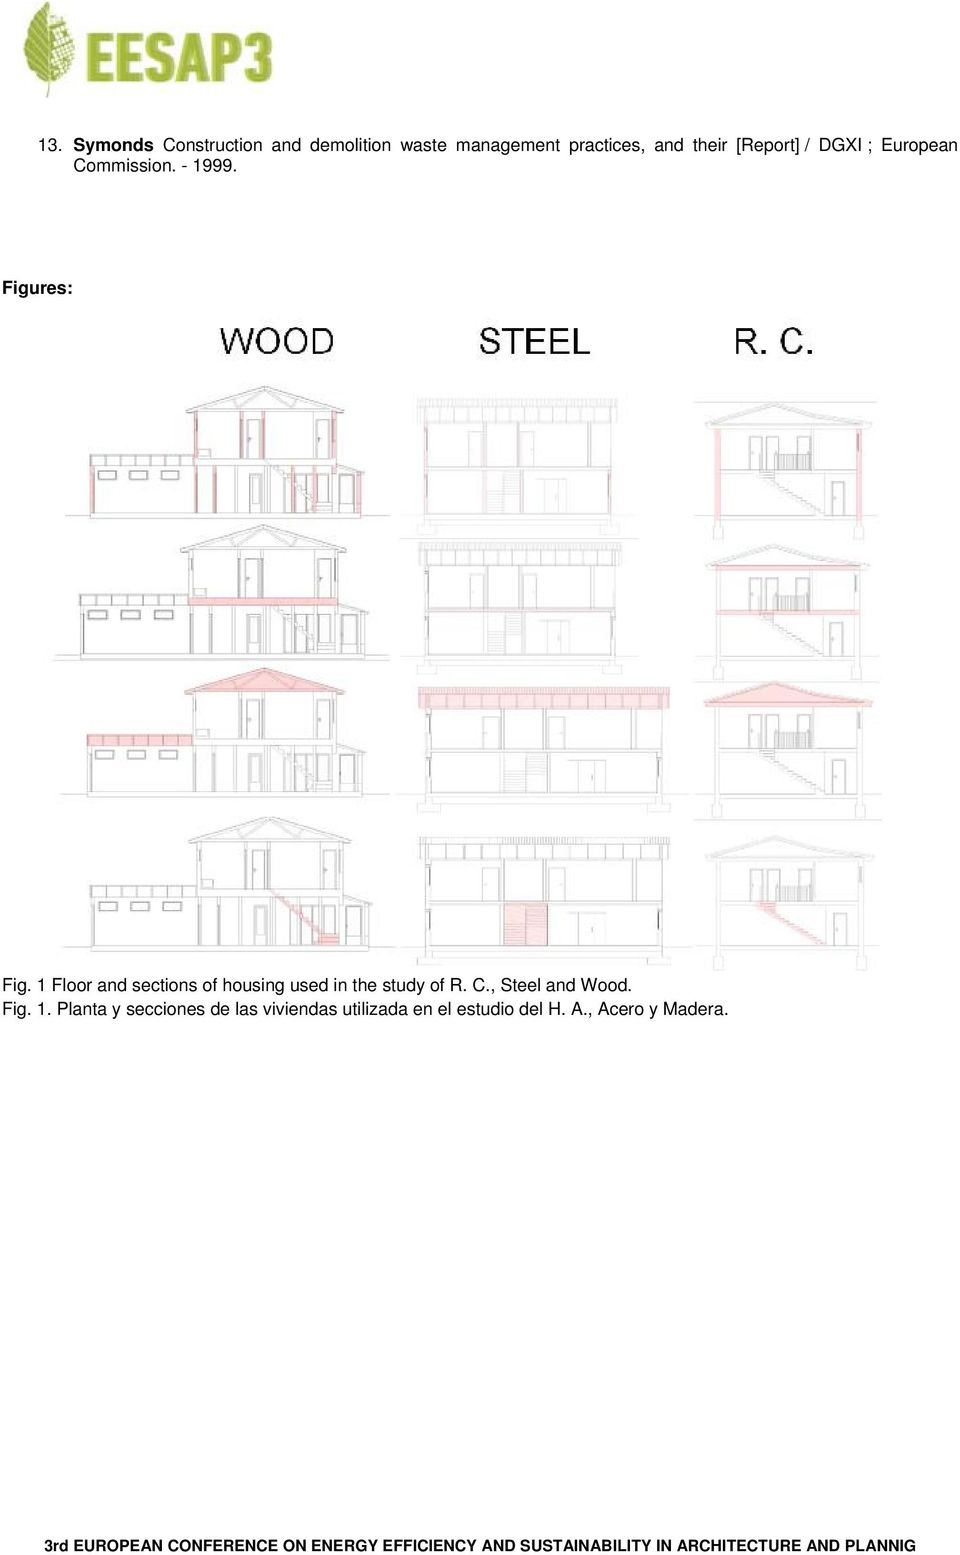 1 Floor and sections of housing used in the study of R. C., Steel and Wood.